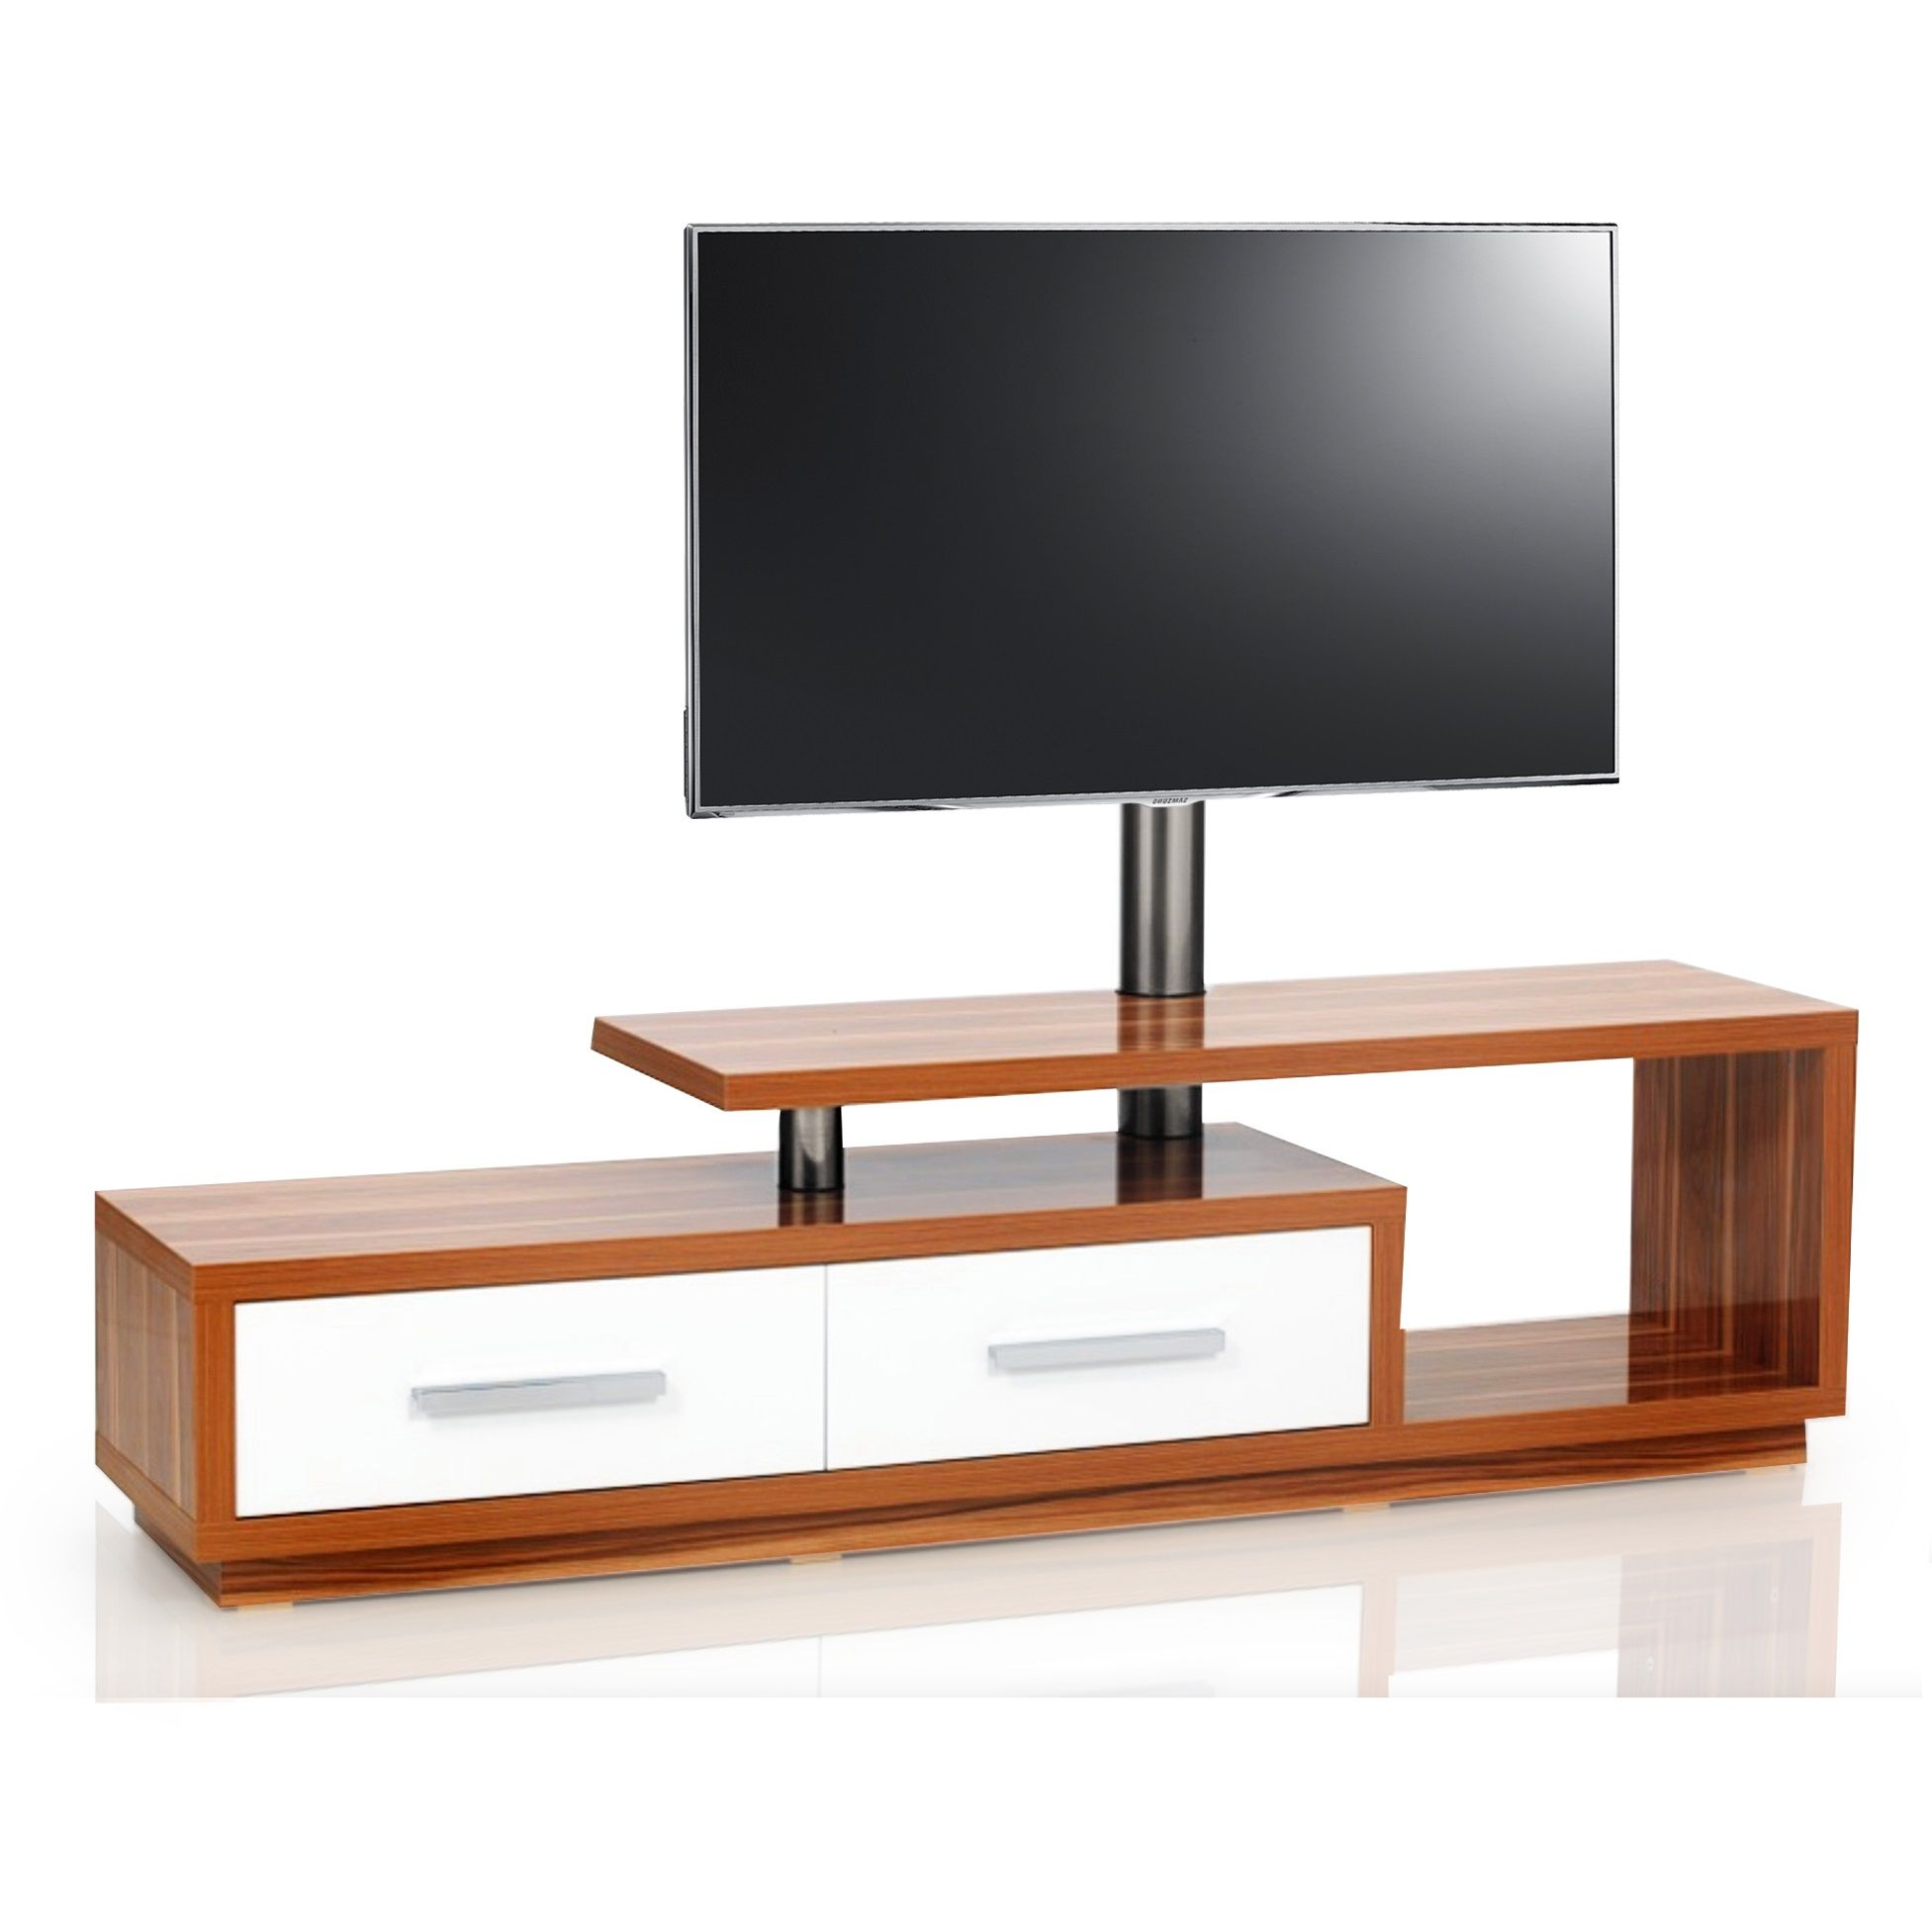 Designe De Support De Television - Best Table De Tv Design Images Joshkrajcik Us Joshkrajcik Us[mjhdah]https://m.media-amazon.com/images/S/aplus-seller-content-images-us-east-1/ATVPDKIKX0DER/A1Q5TXAPOS7WLS/B01K0DF3CG/AbTxZLEQuub._UX970_TTW__.jpg